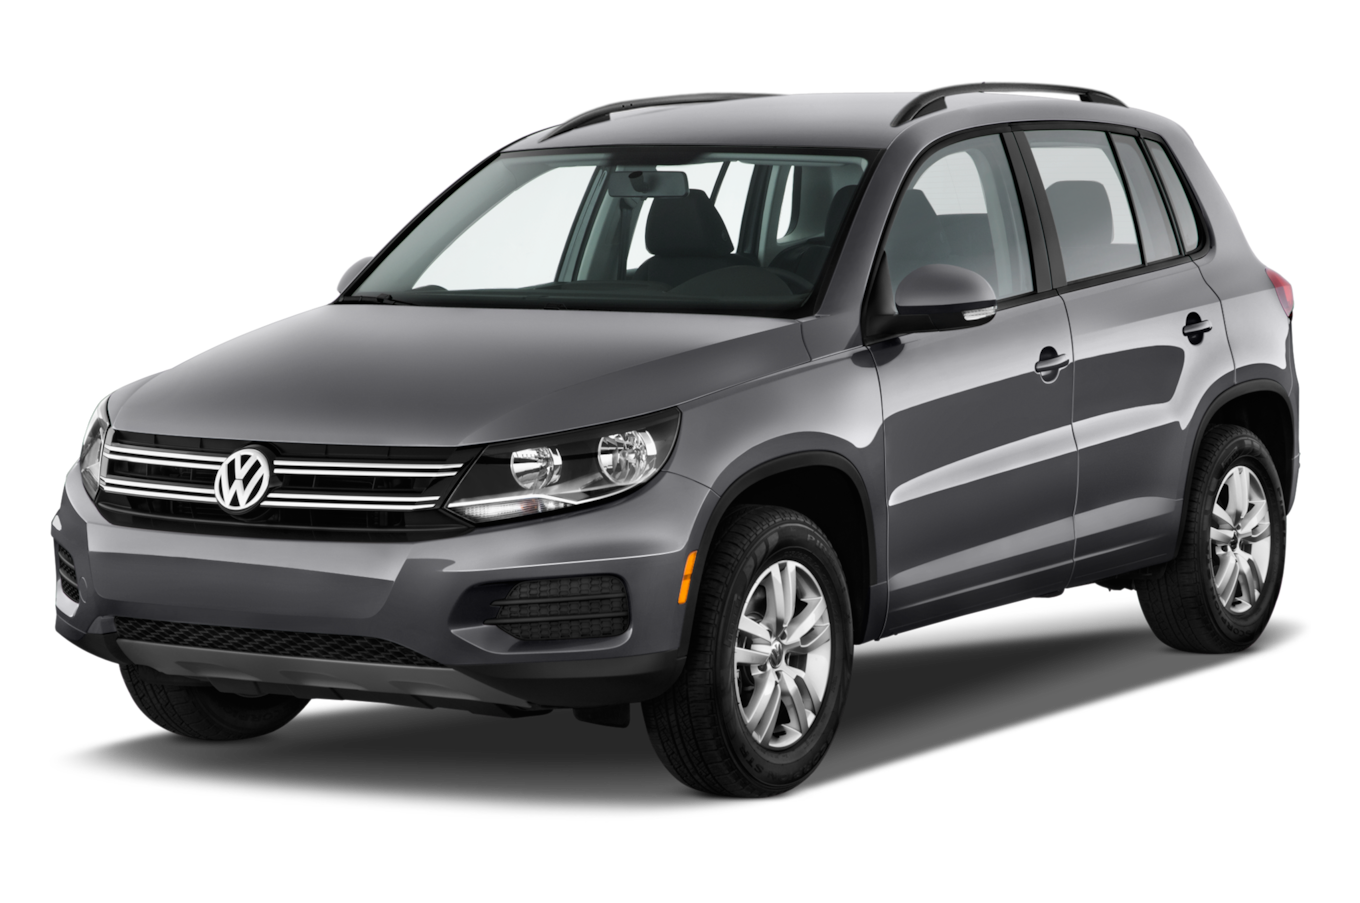 Motor Trend Reviews The 2017 Volkswagen Tiguan Where Consumers Can Find Detailed Information On Specs Fuel Economy Transmission And Tiguan Vw Volkswagen Car